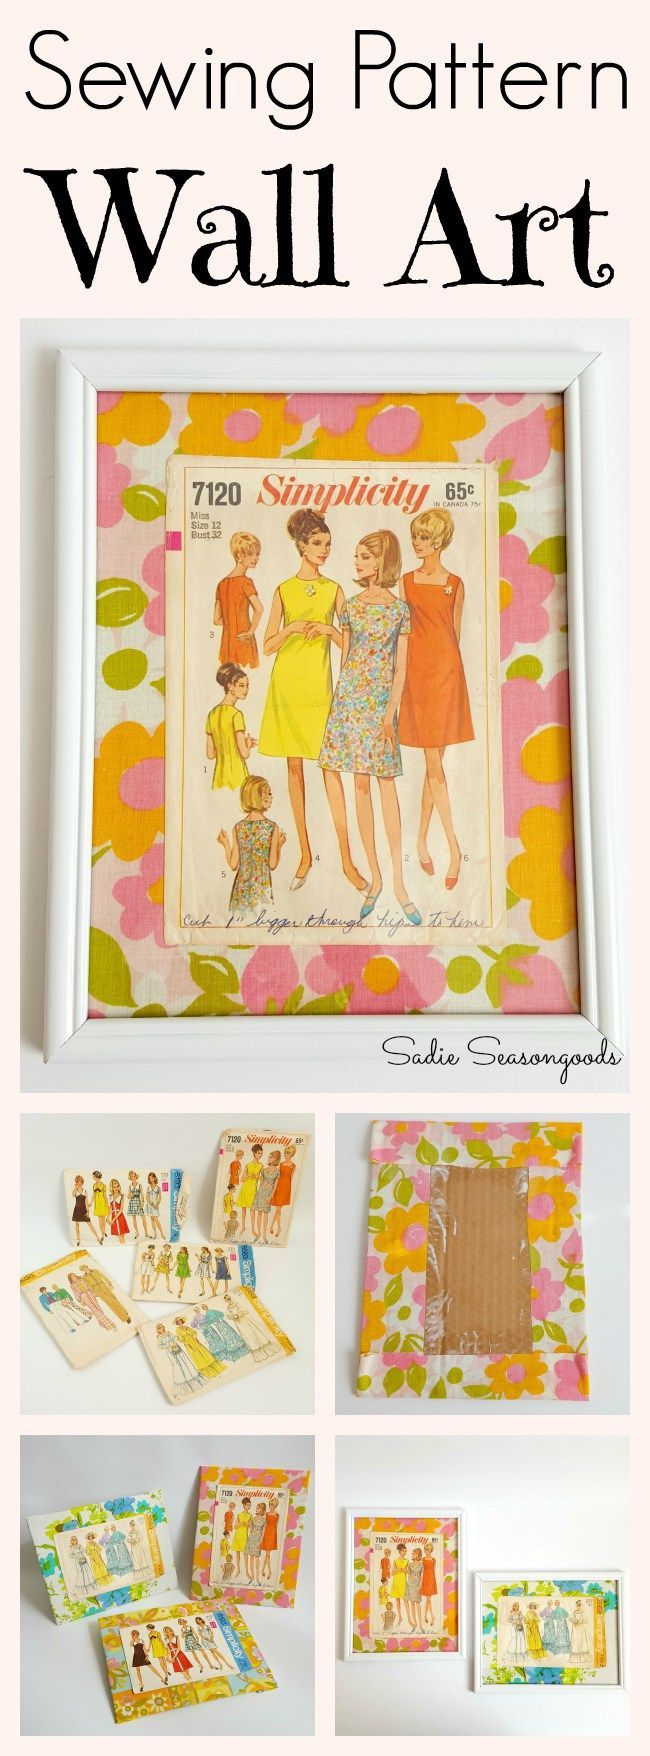 Fashion Wall Art using Repurposed Vintage Sewing Patterns | Linen ...